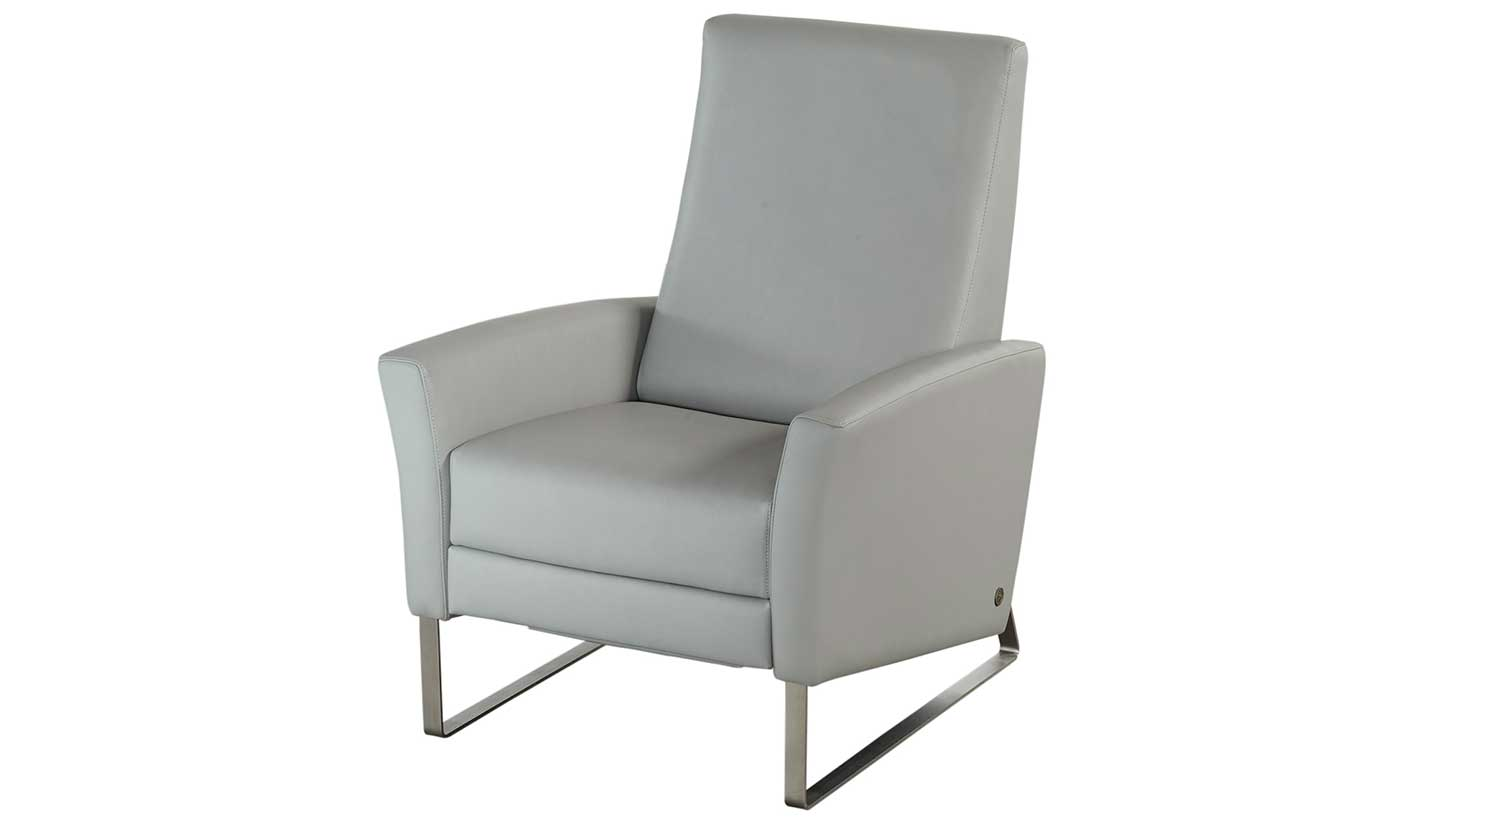 Recliner Catnapper Concord Lay Flat Swivel Glider Recliners Mainstays Home